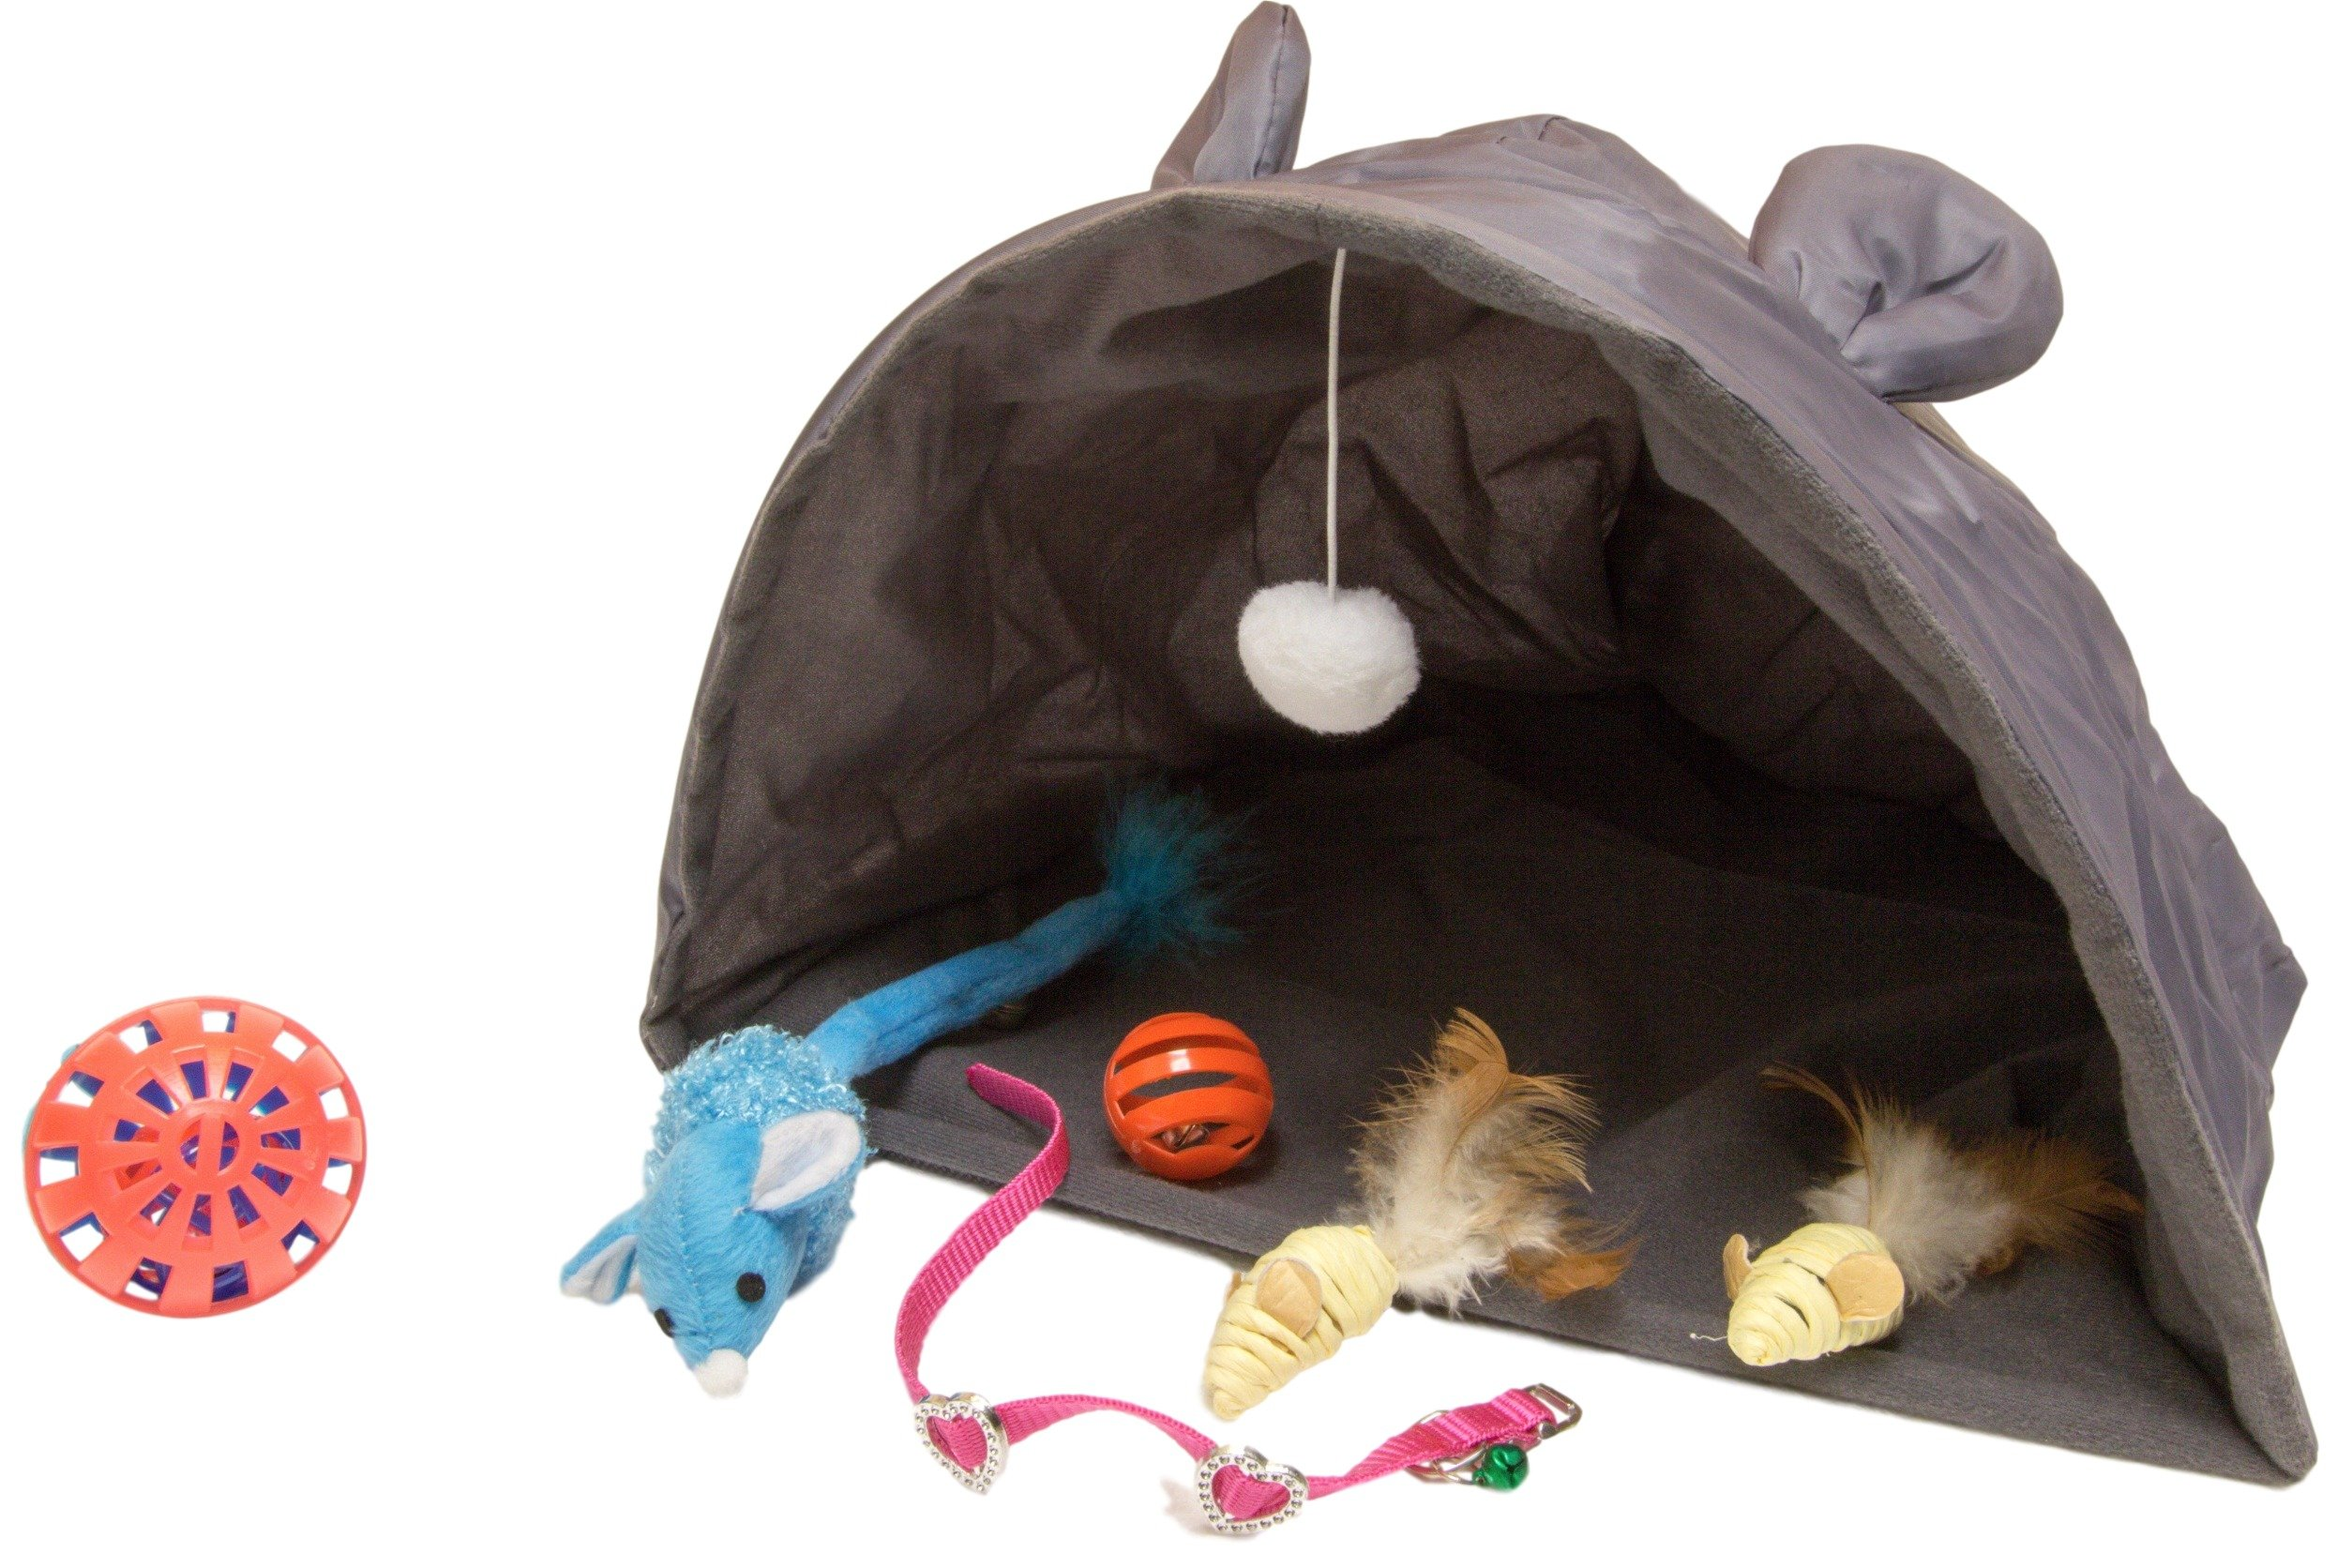 Kitty Playtent And Mouse Toy Bundle PLUS For Cats | Mouse Shaped Play Tent w Hanging Ball Toy | (2) Natural Feather Tail Mice | 2-In-1 Jumbo Bell Ball | Blue Critter w Bell | Small Bell Ball | Collar